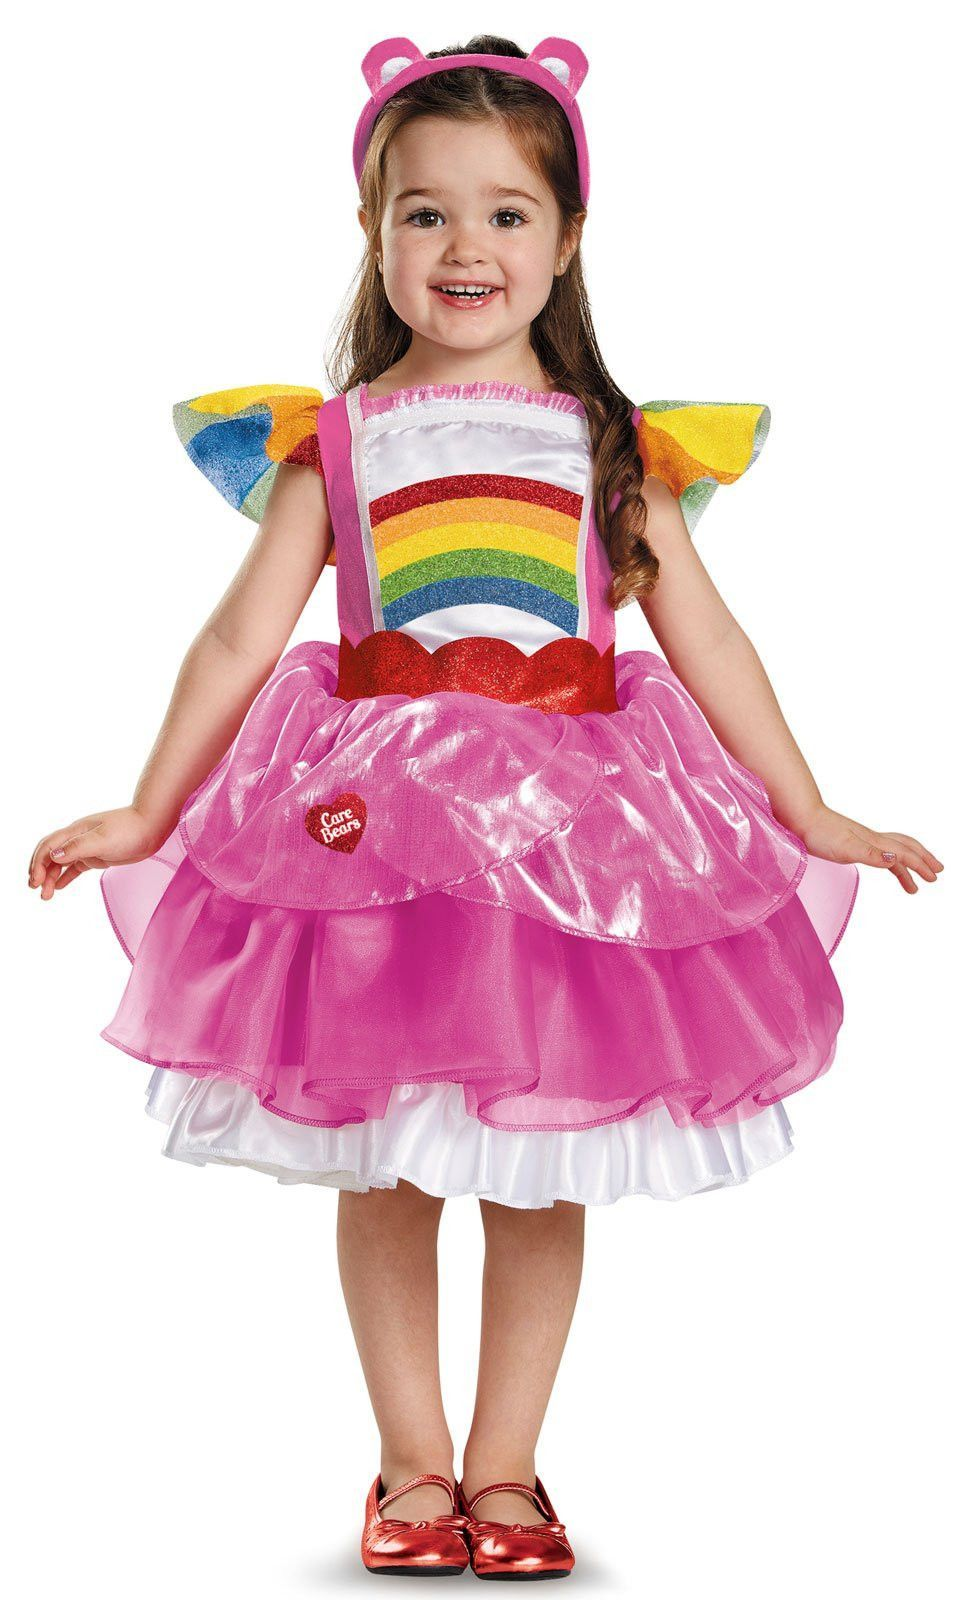 Cheer Bear Deluxe Tutu Child Costume   Products   Pinterest